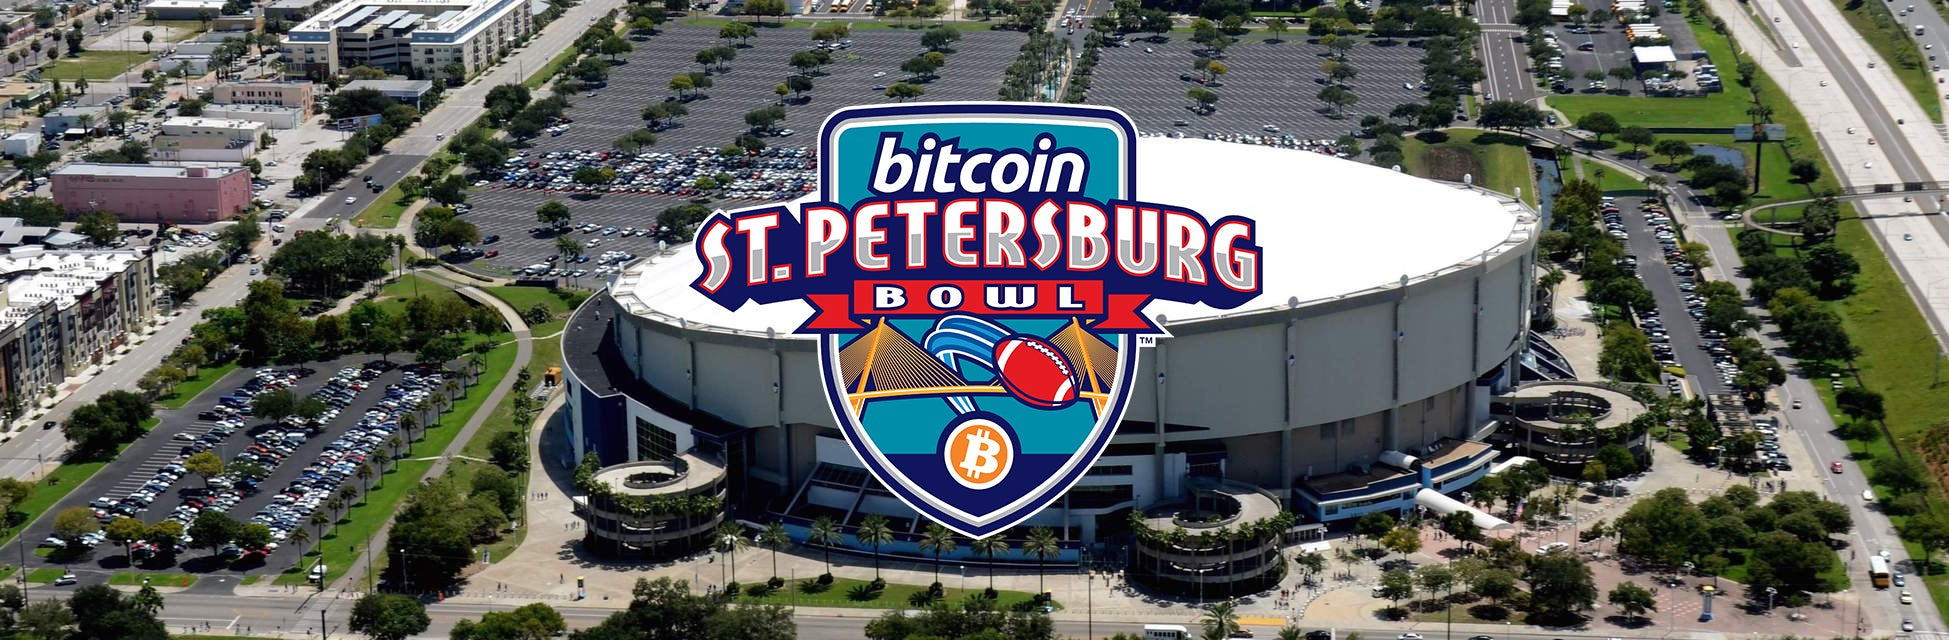 St Petersburg Bowl Tickets